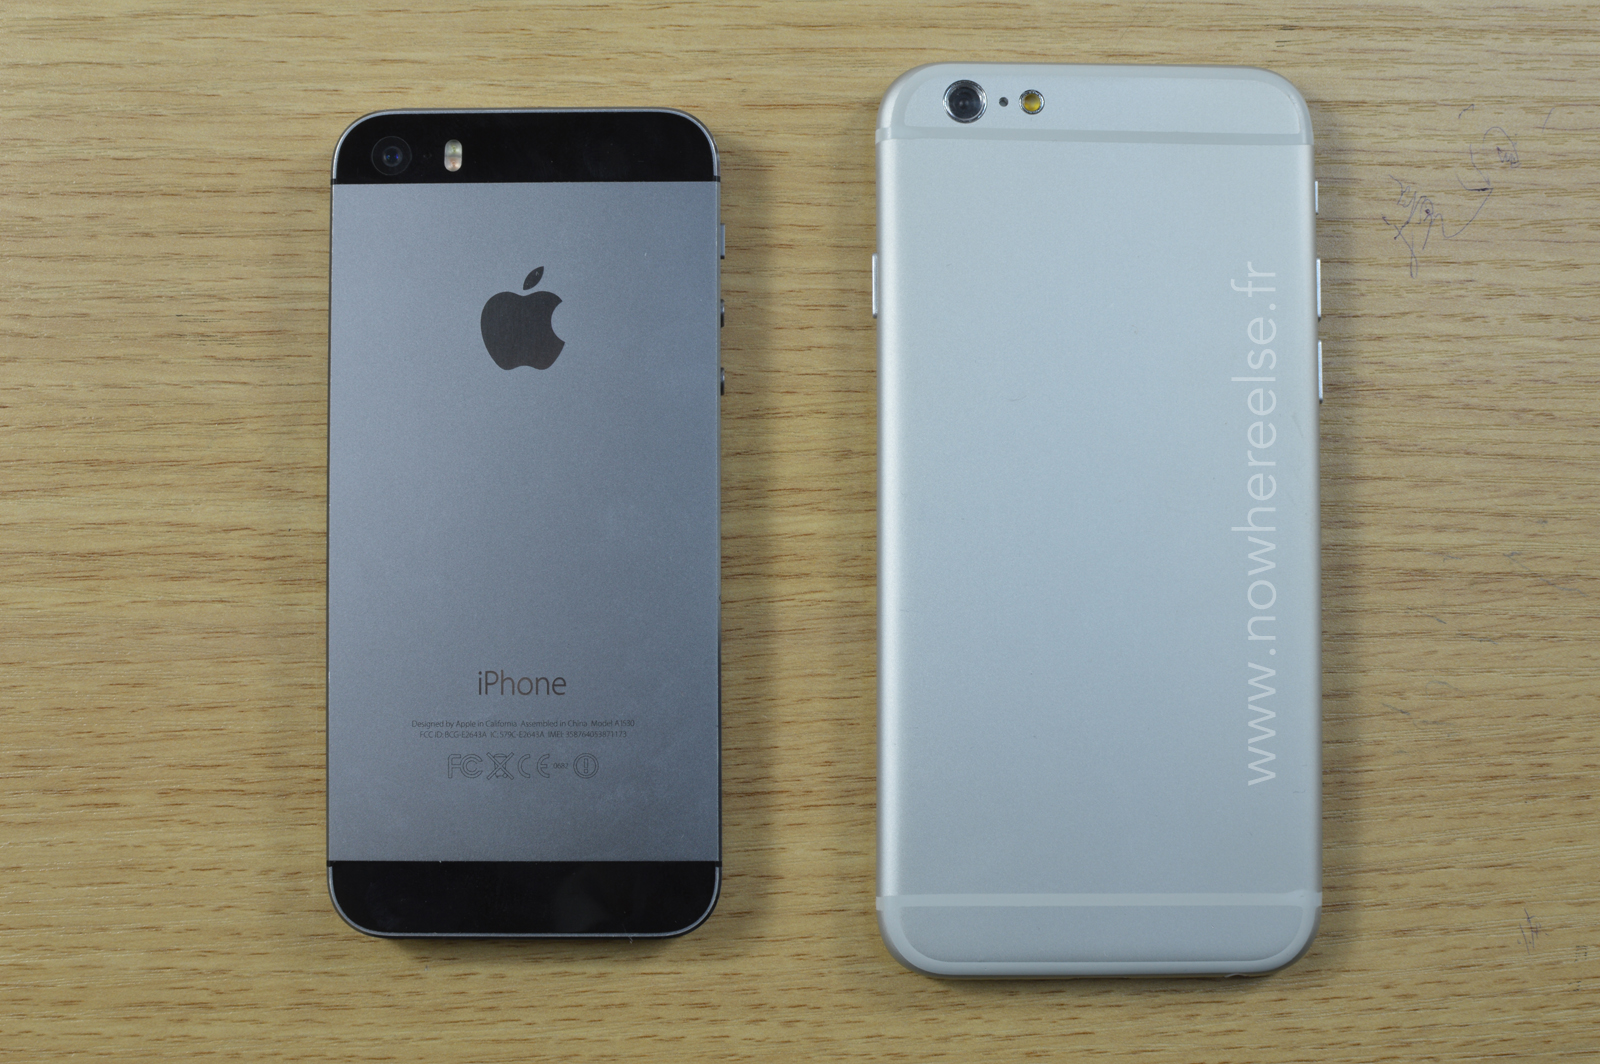 Dummy de iPhone 6 comparado com 5s